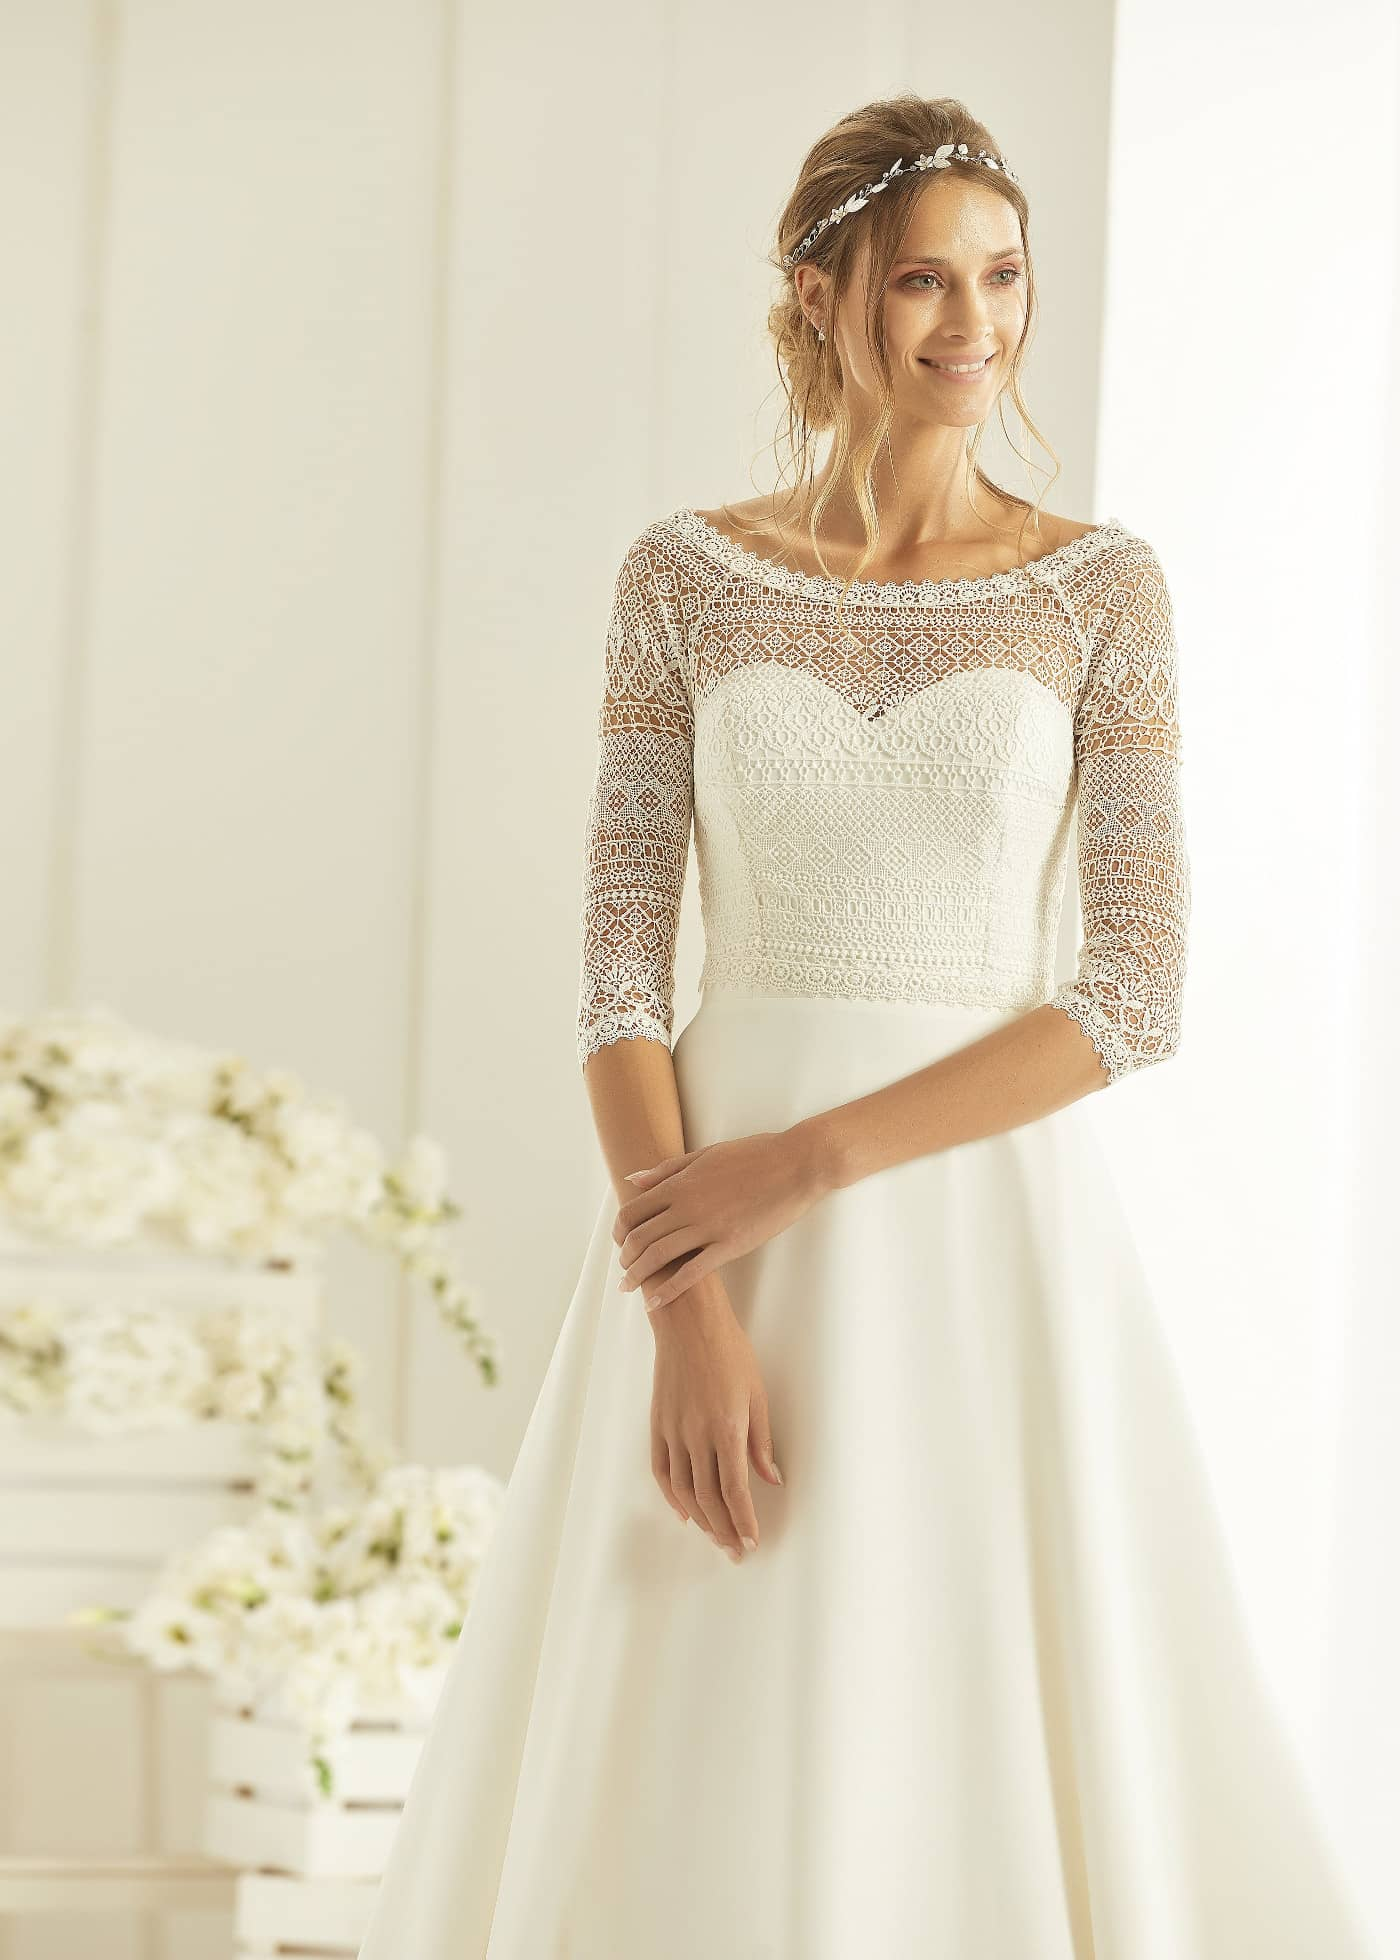 Harmonia Wedding dress at Copplestones Bridal